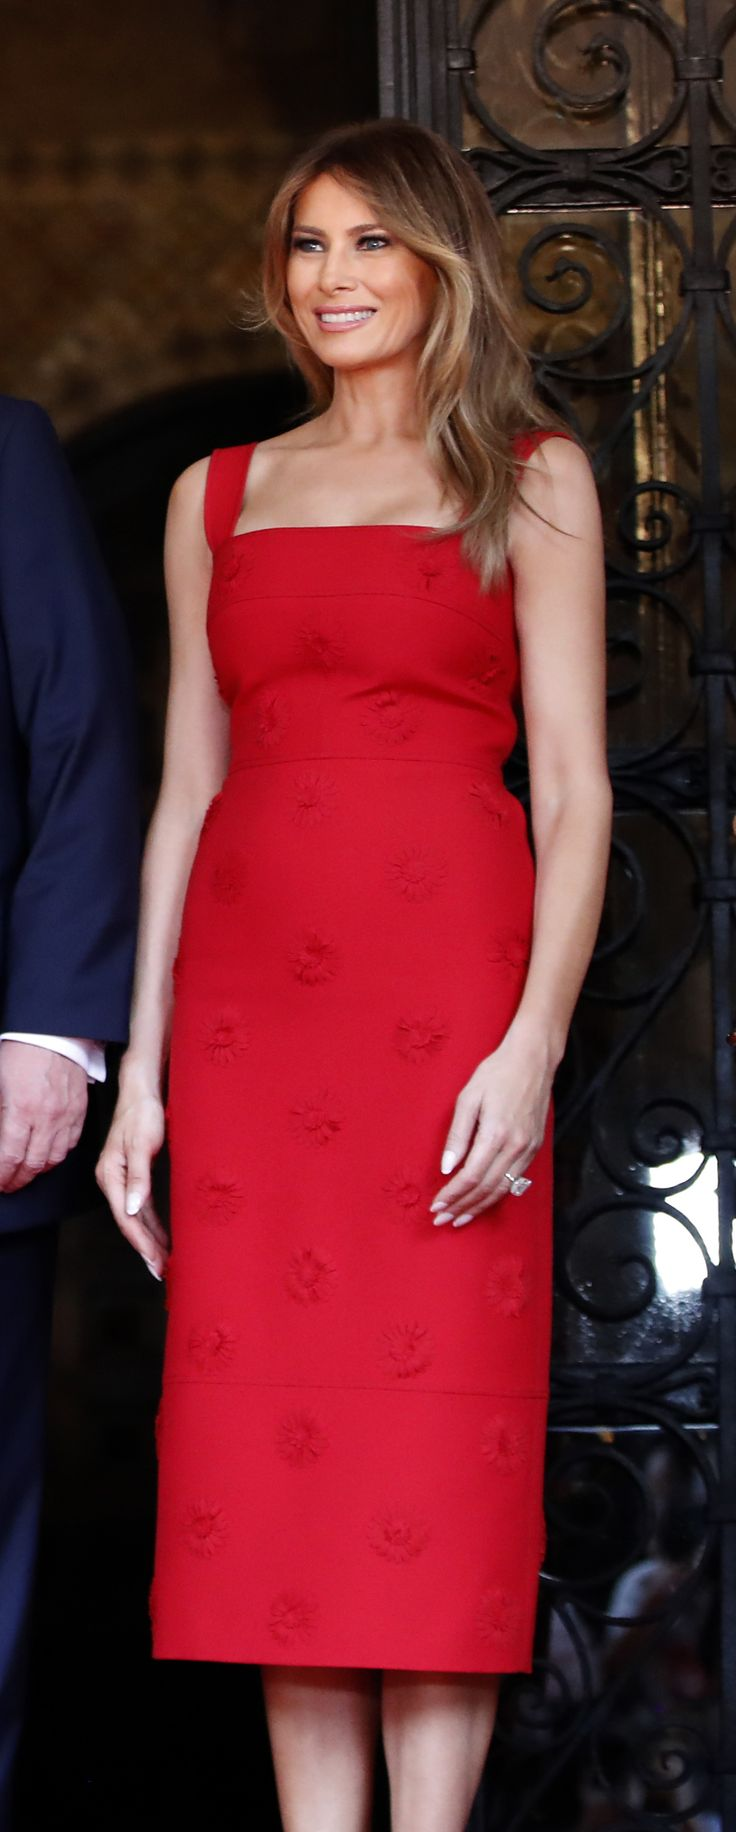 First Lady Melania At Mar-a-Lago Resort In Florida On Thursday April 6th 2017